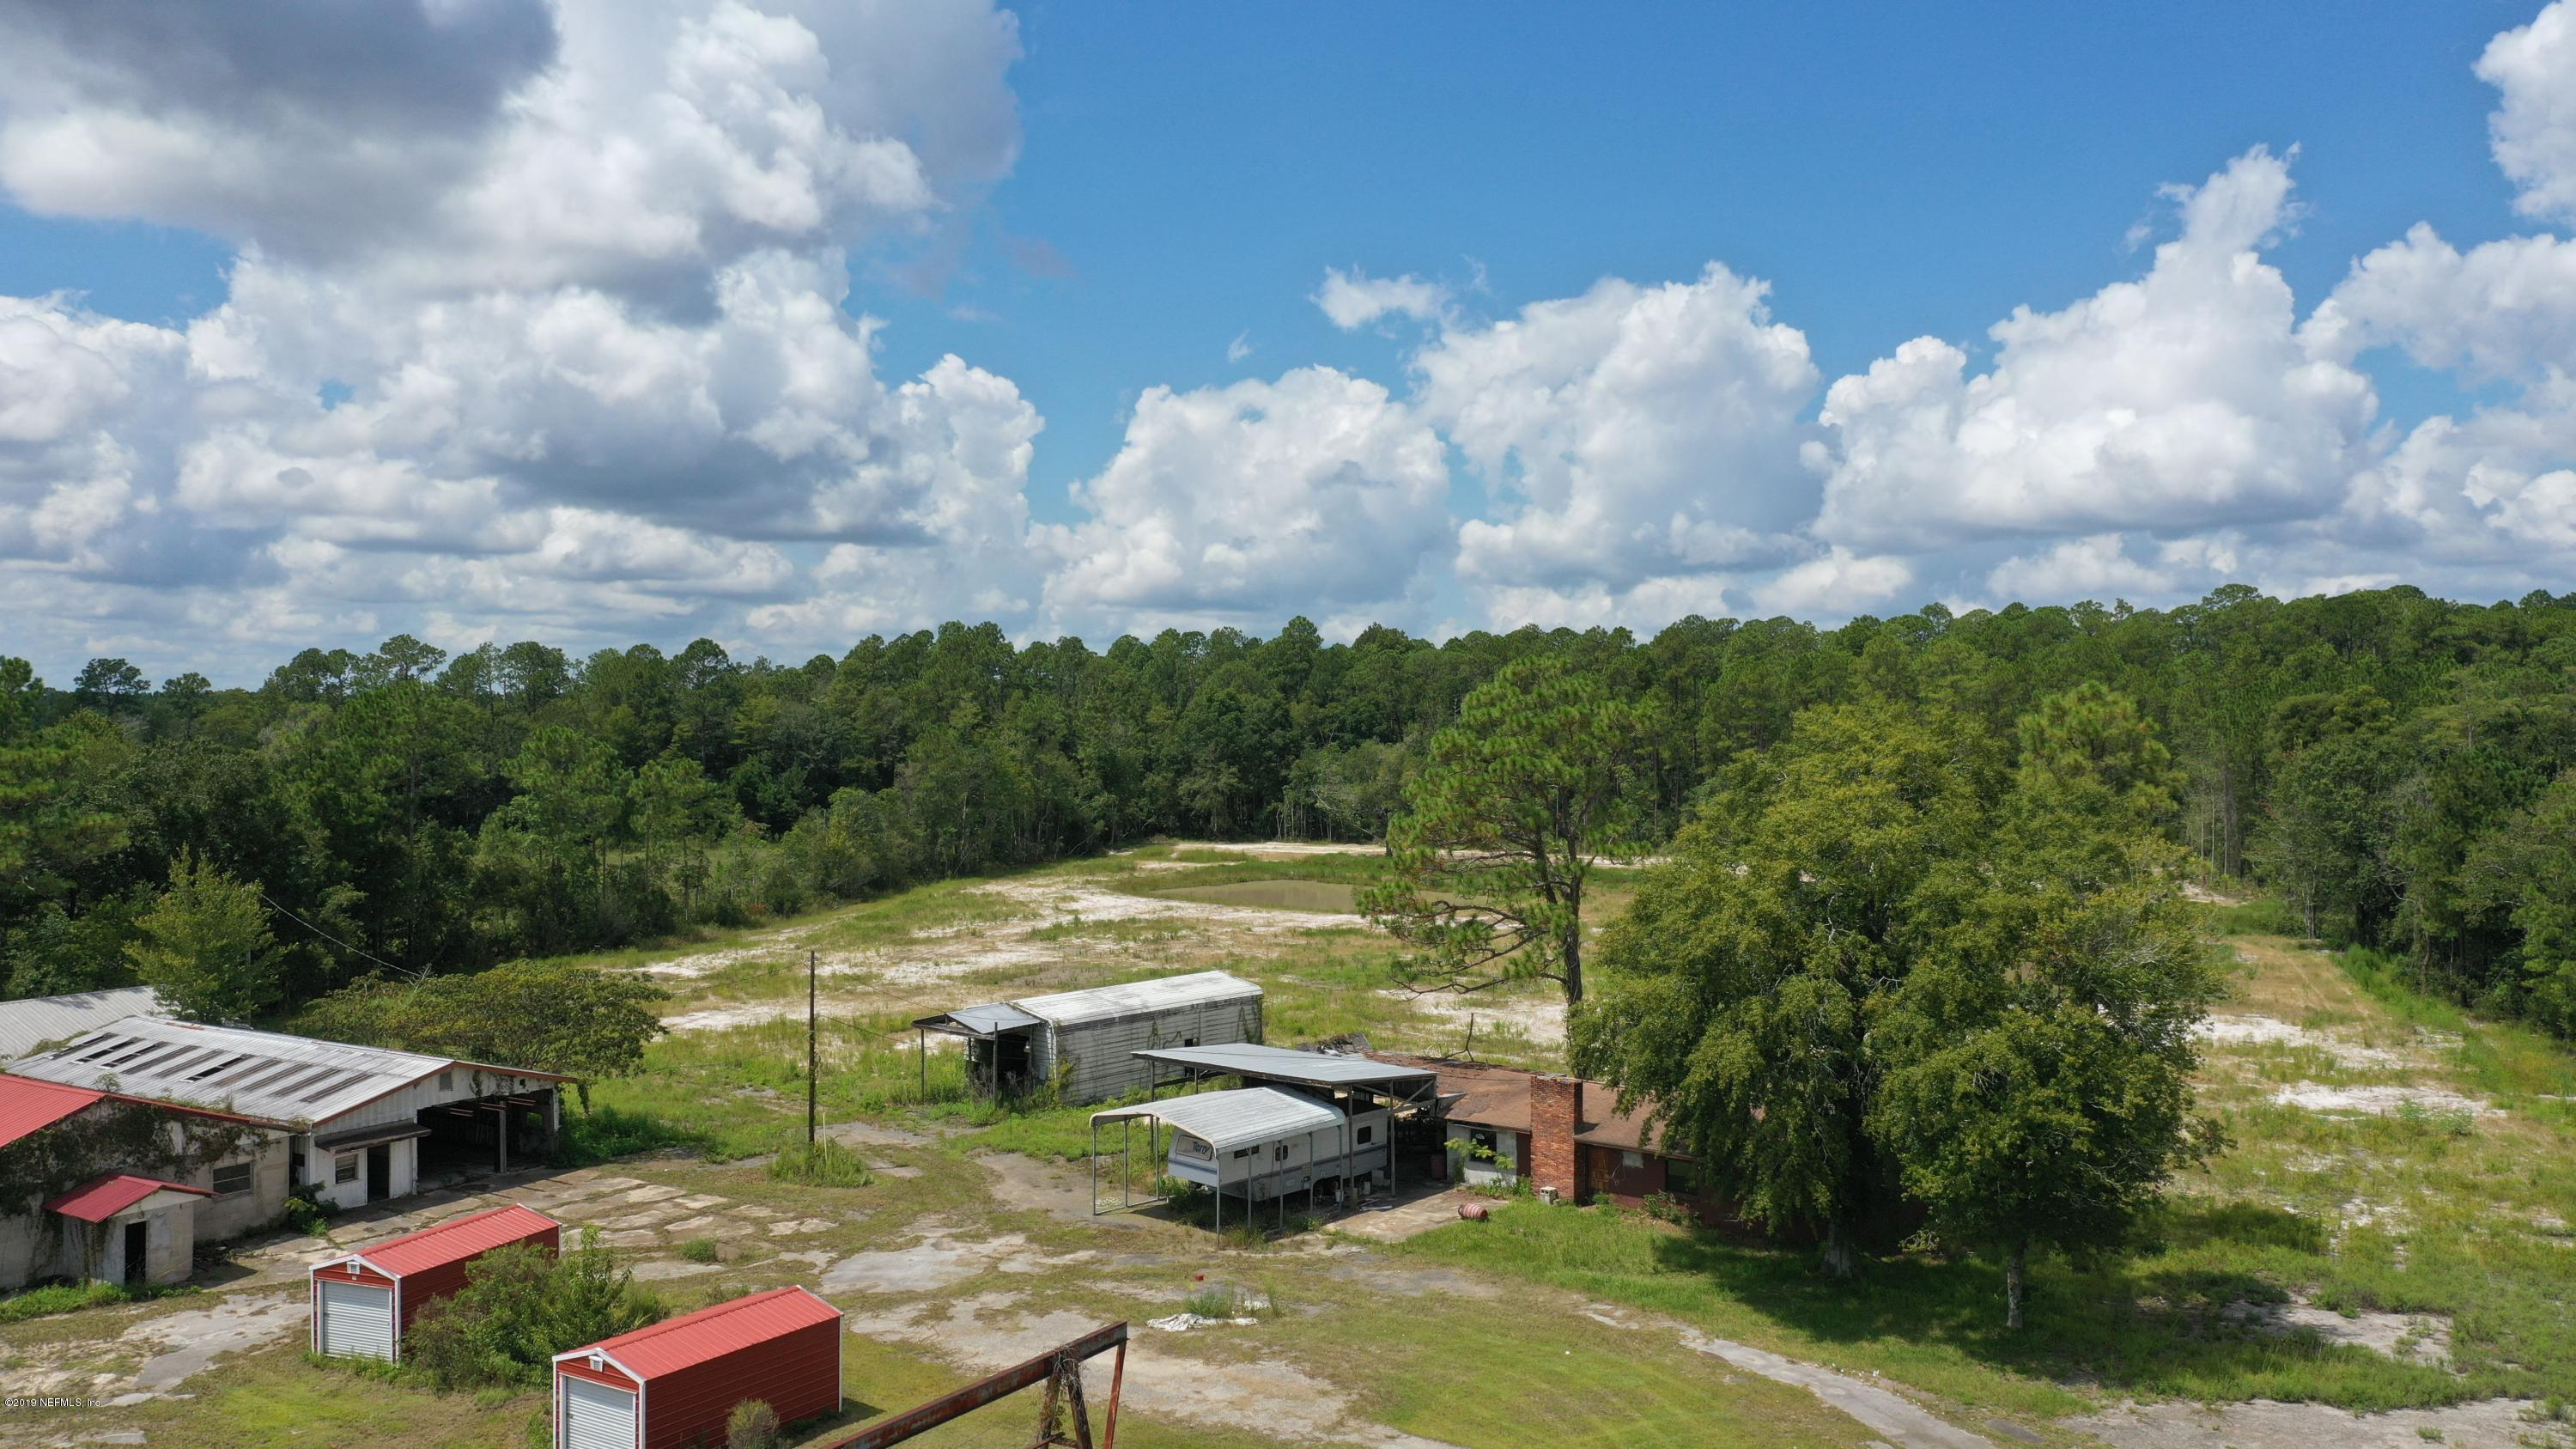 12688 HIGHWAY 301, HAMPTON, FLORIDA 32044, ,Commercial,For sale,HIGHWAY 301,1012862